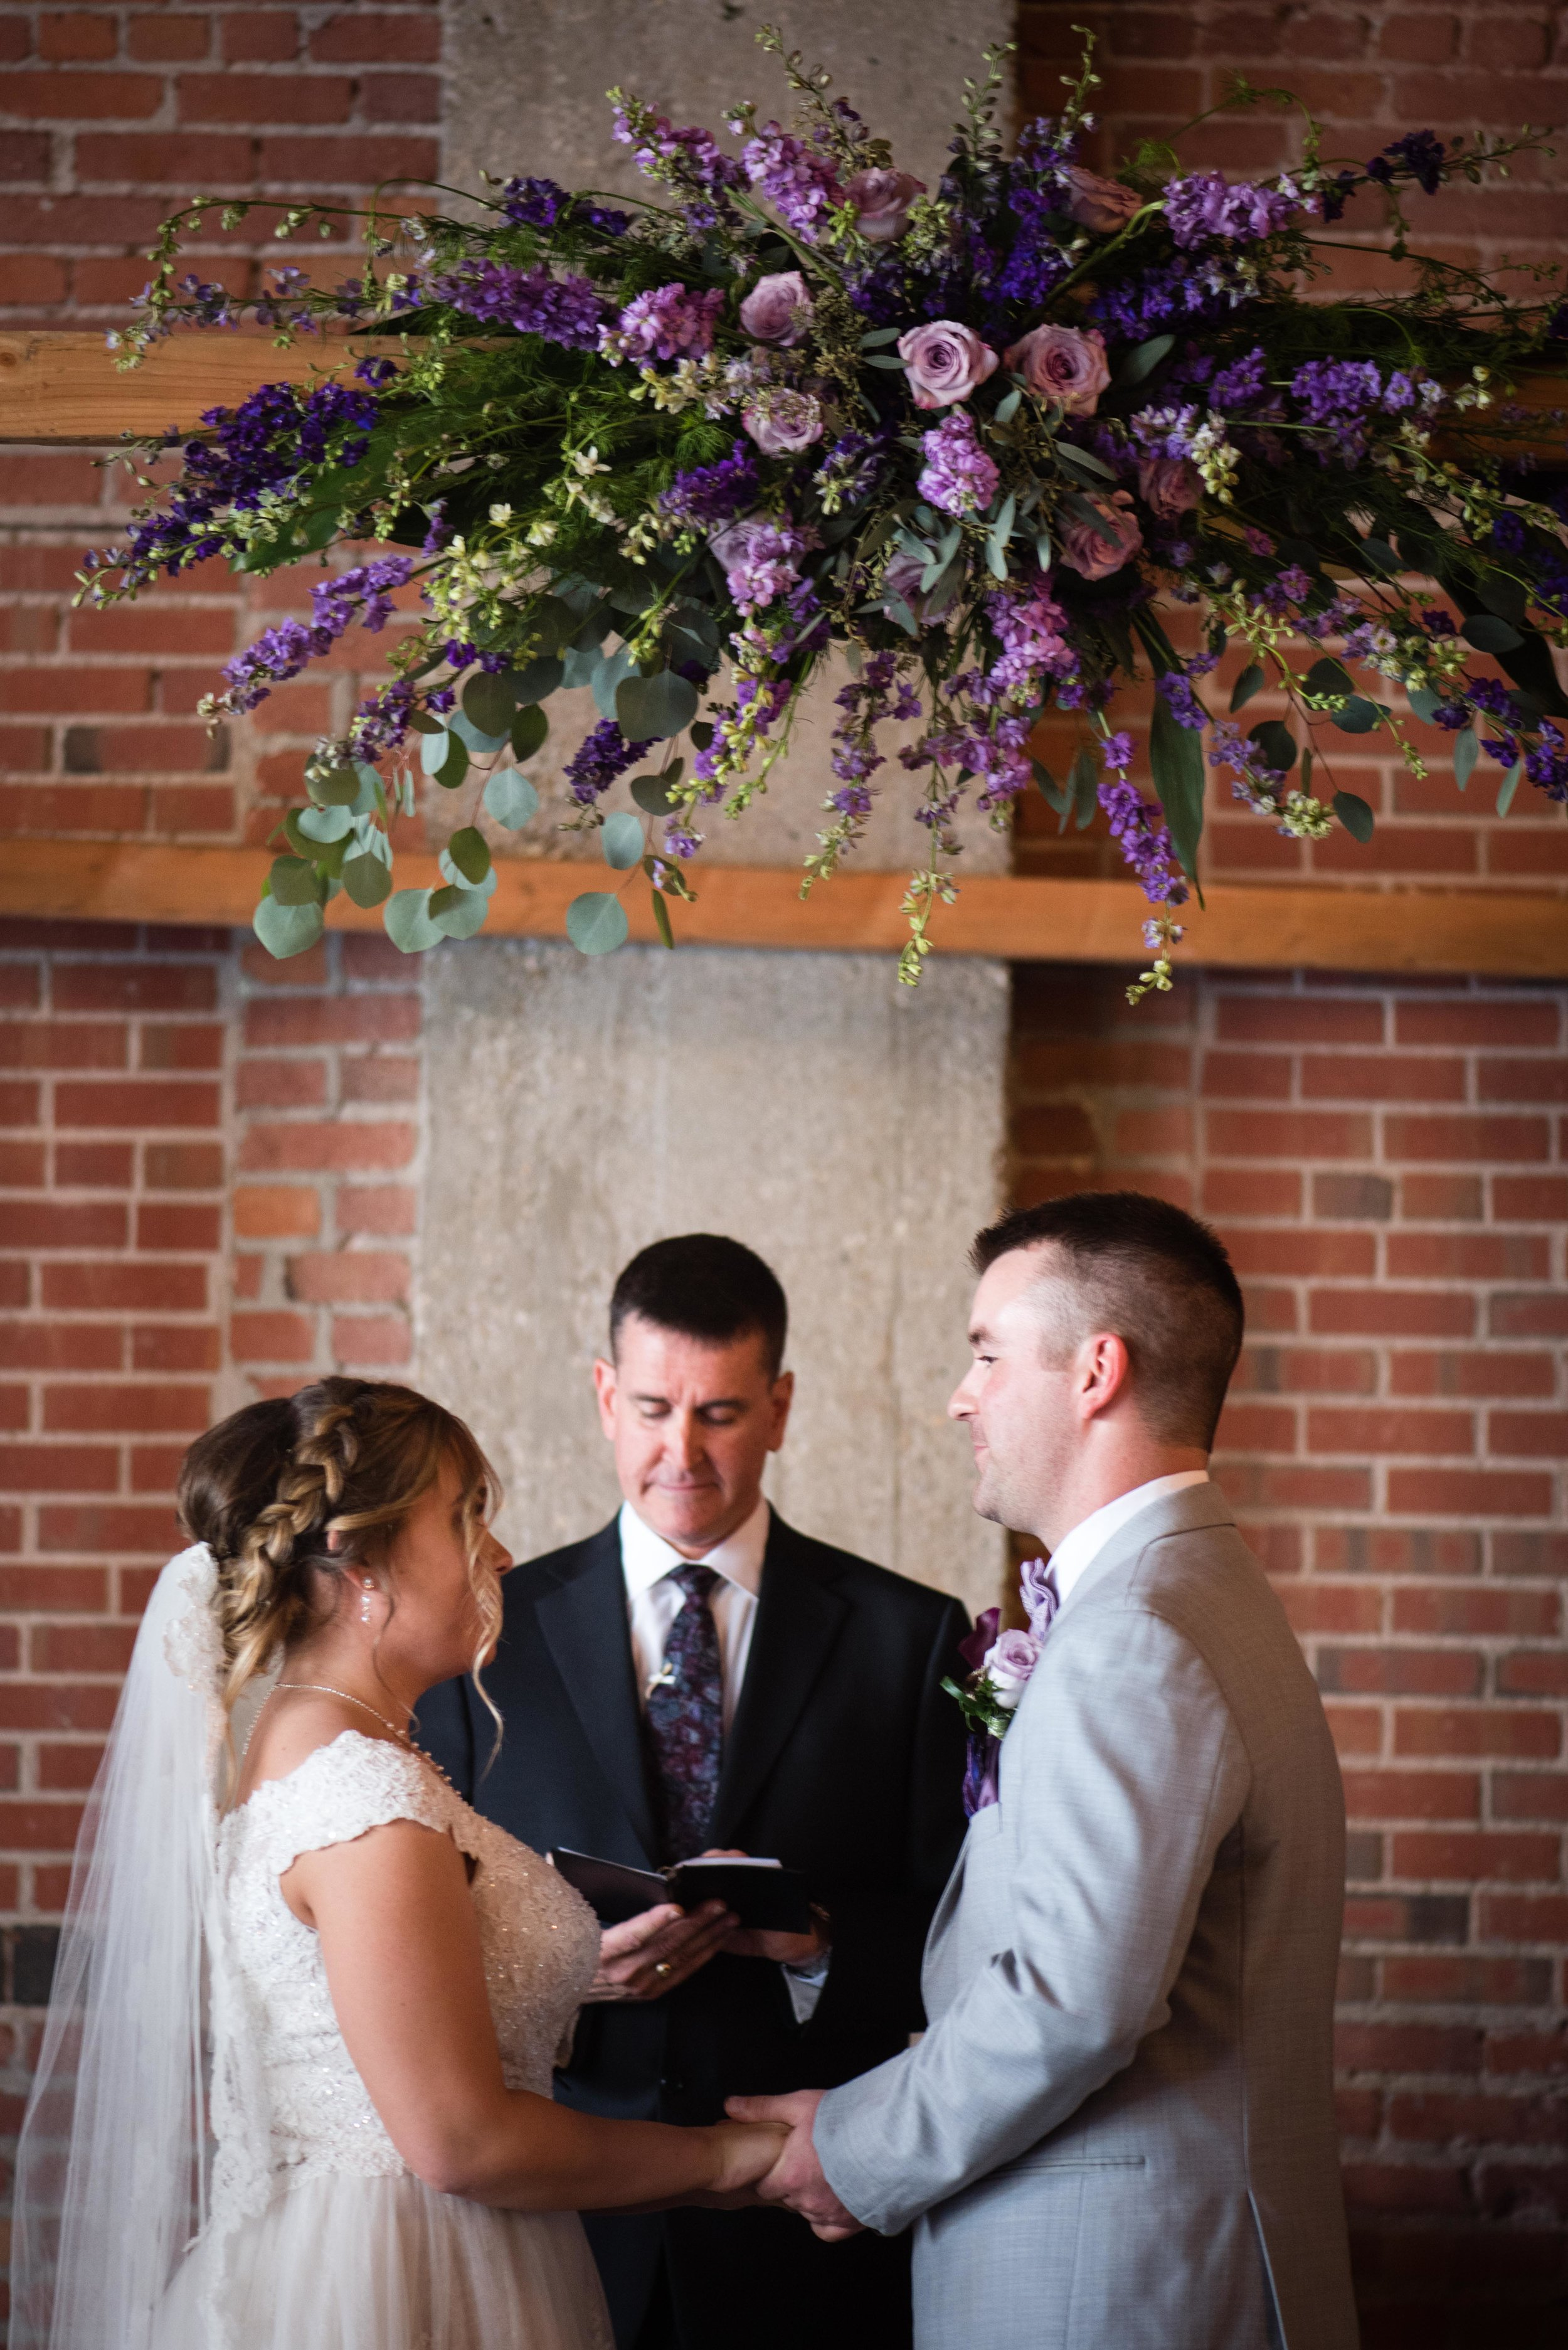 J+A Wedding - Ceremony-73.jpg